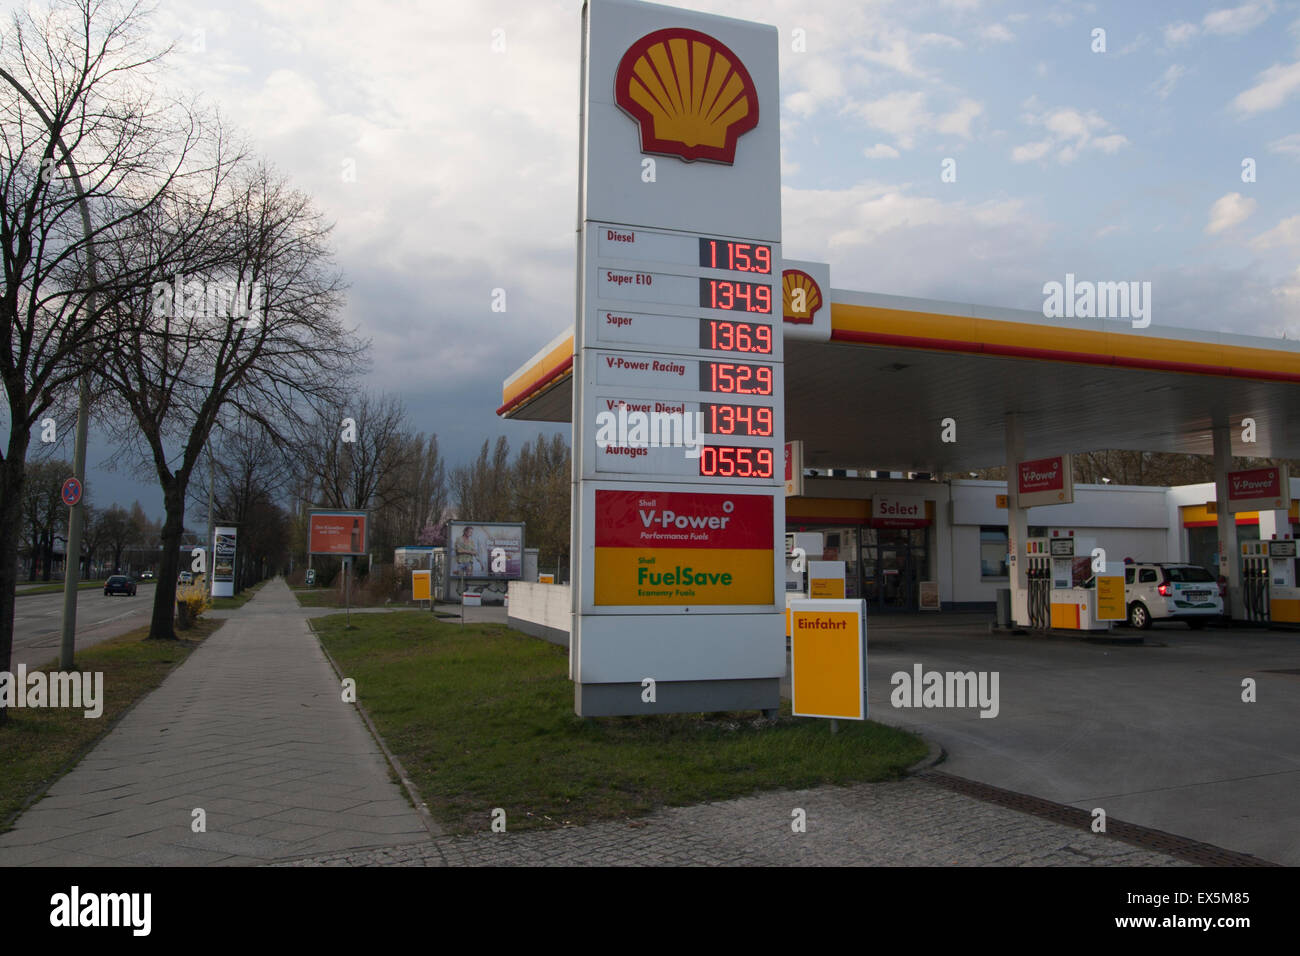 Gas Station Prices >> Shell Gas Petrol Station Prices Berlin Germany Stock Photo 84948197